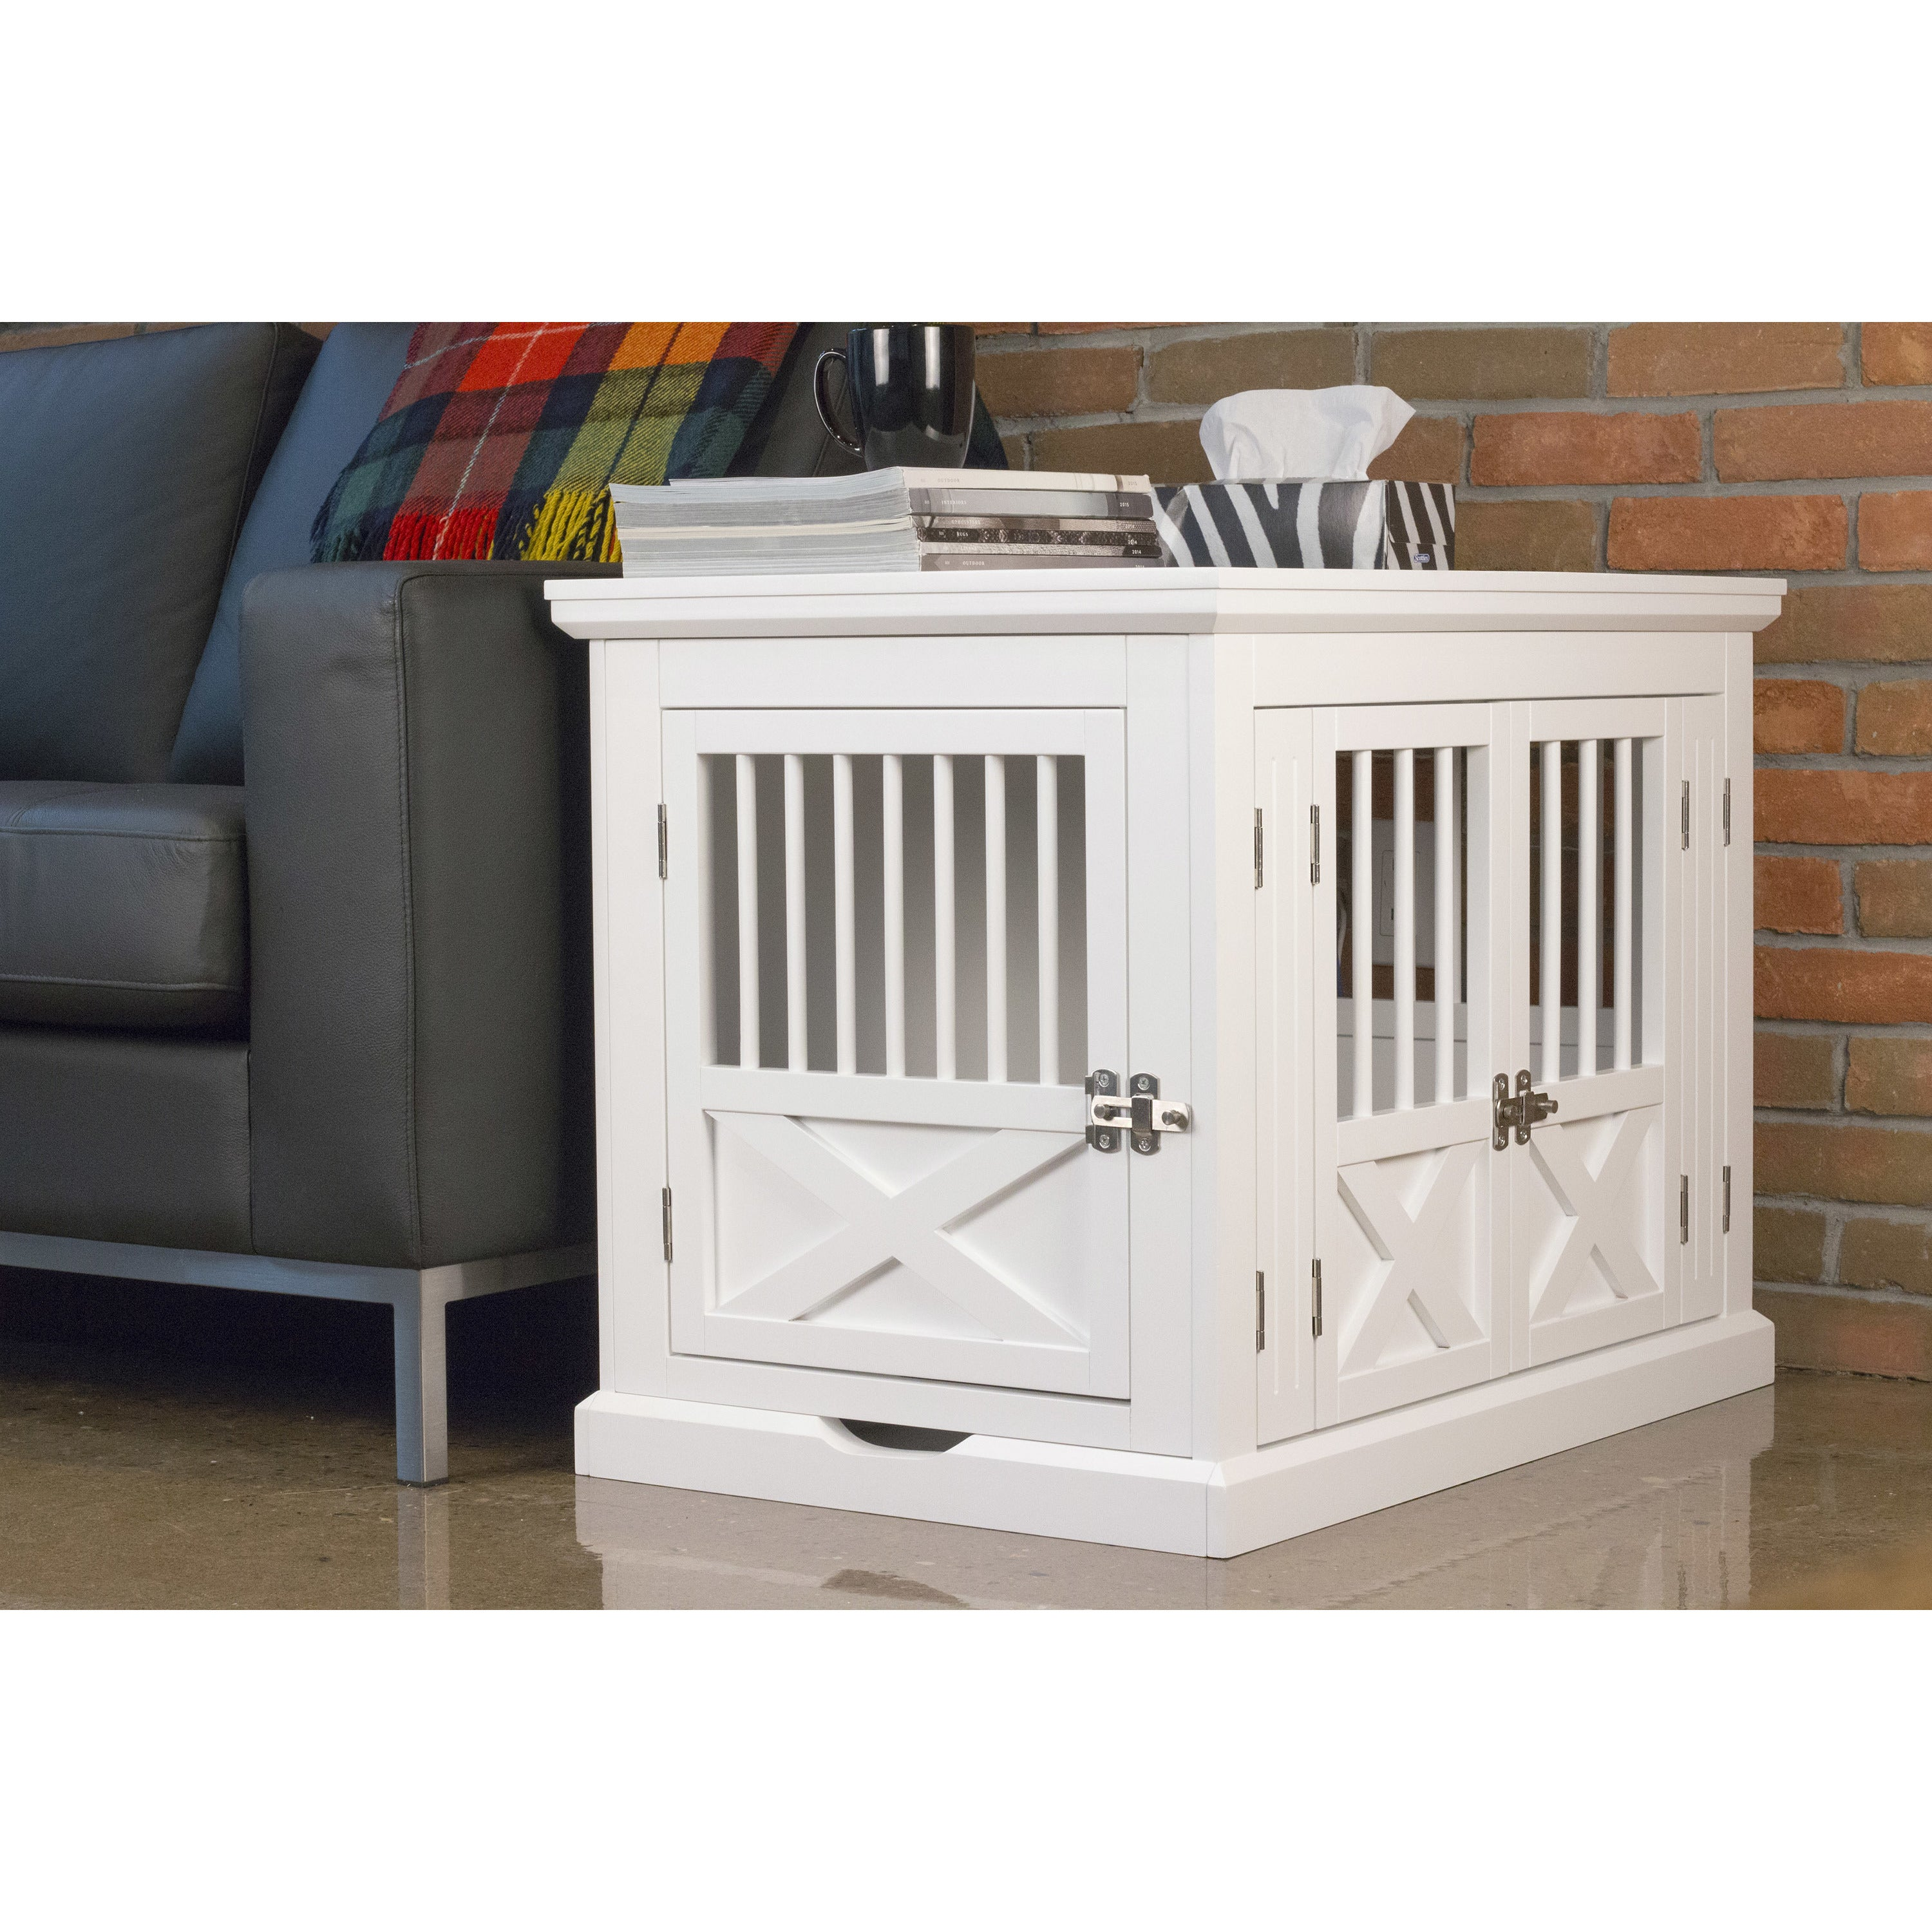 Shop Merry Products White Triple Door Dog Crate And End Table   On Sale    Free Shipping Today   Overstock.com   19511883